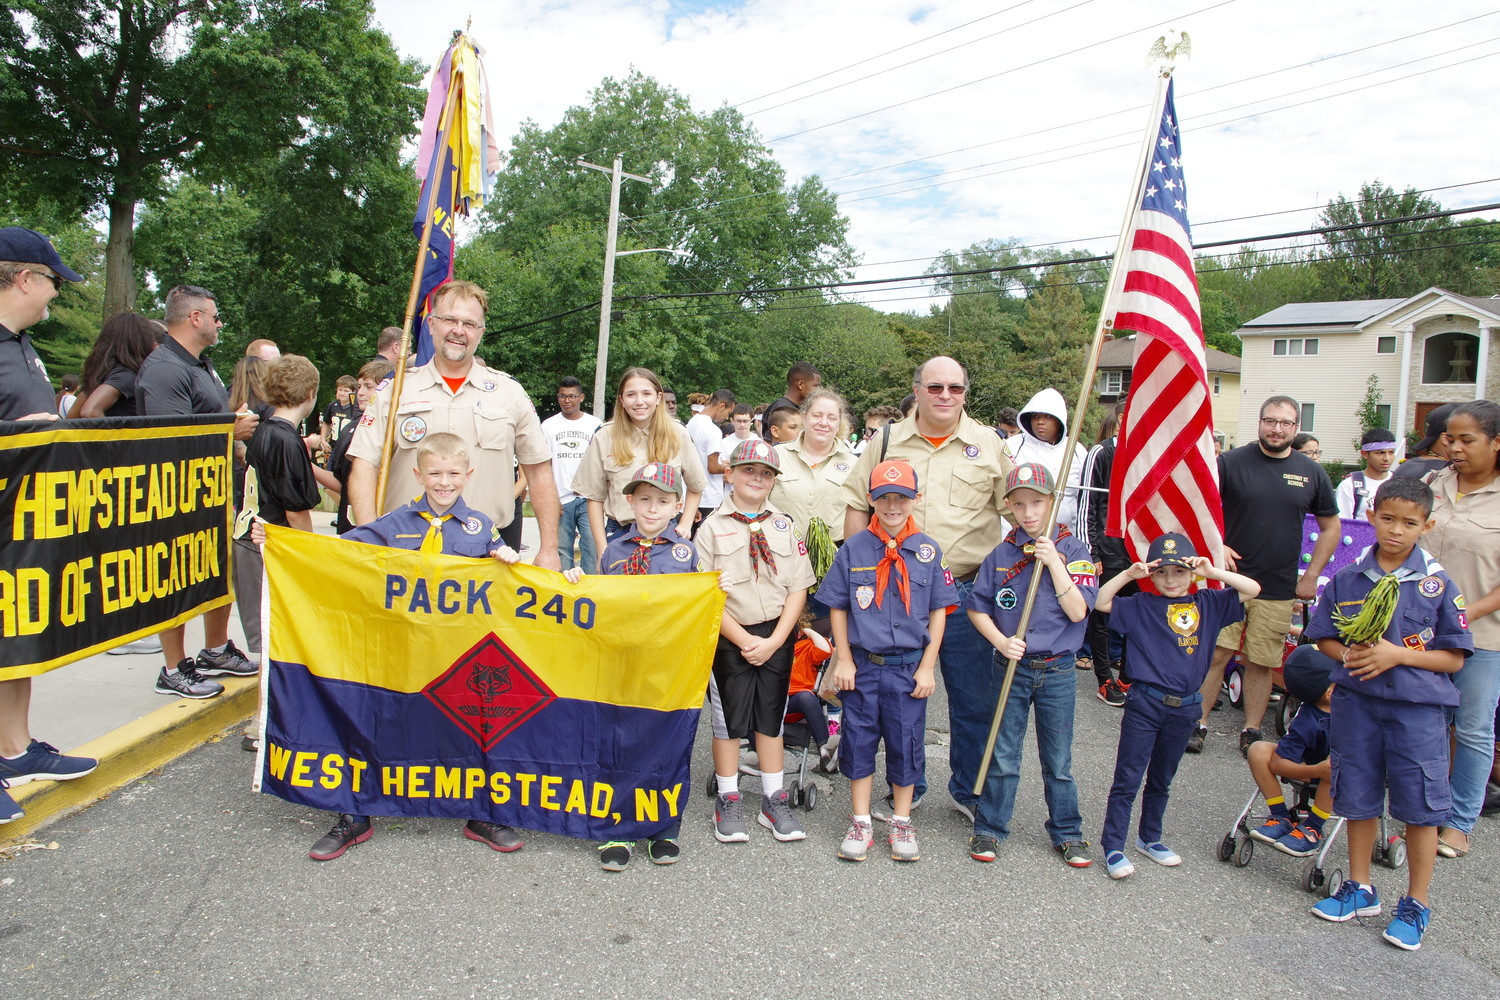 West Hempstead's Cub Scout Pack 240 showed their community pride at the parade.